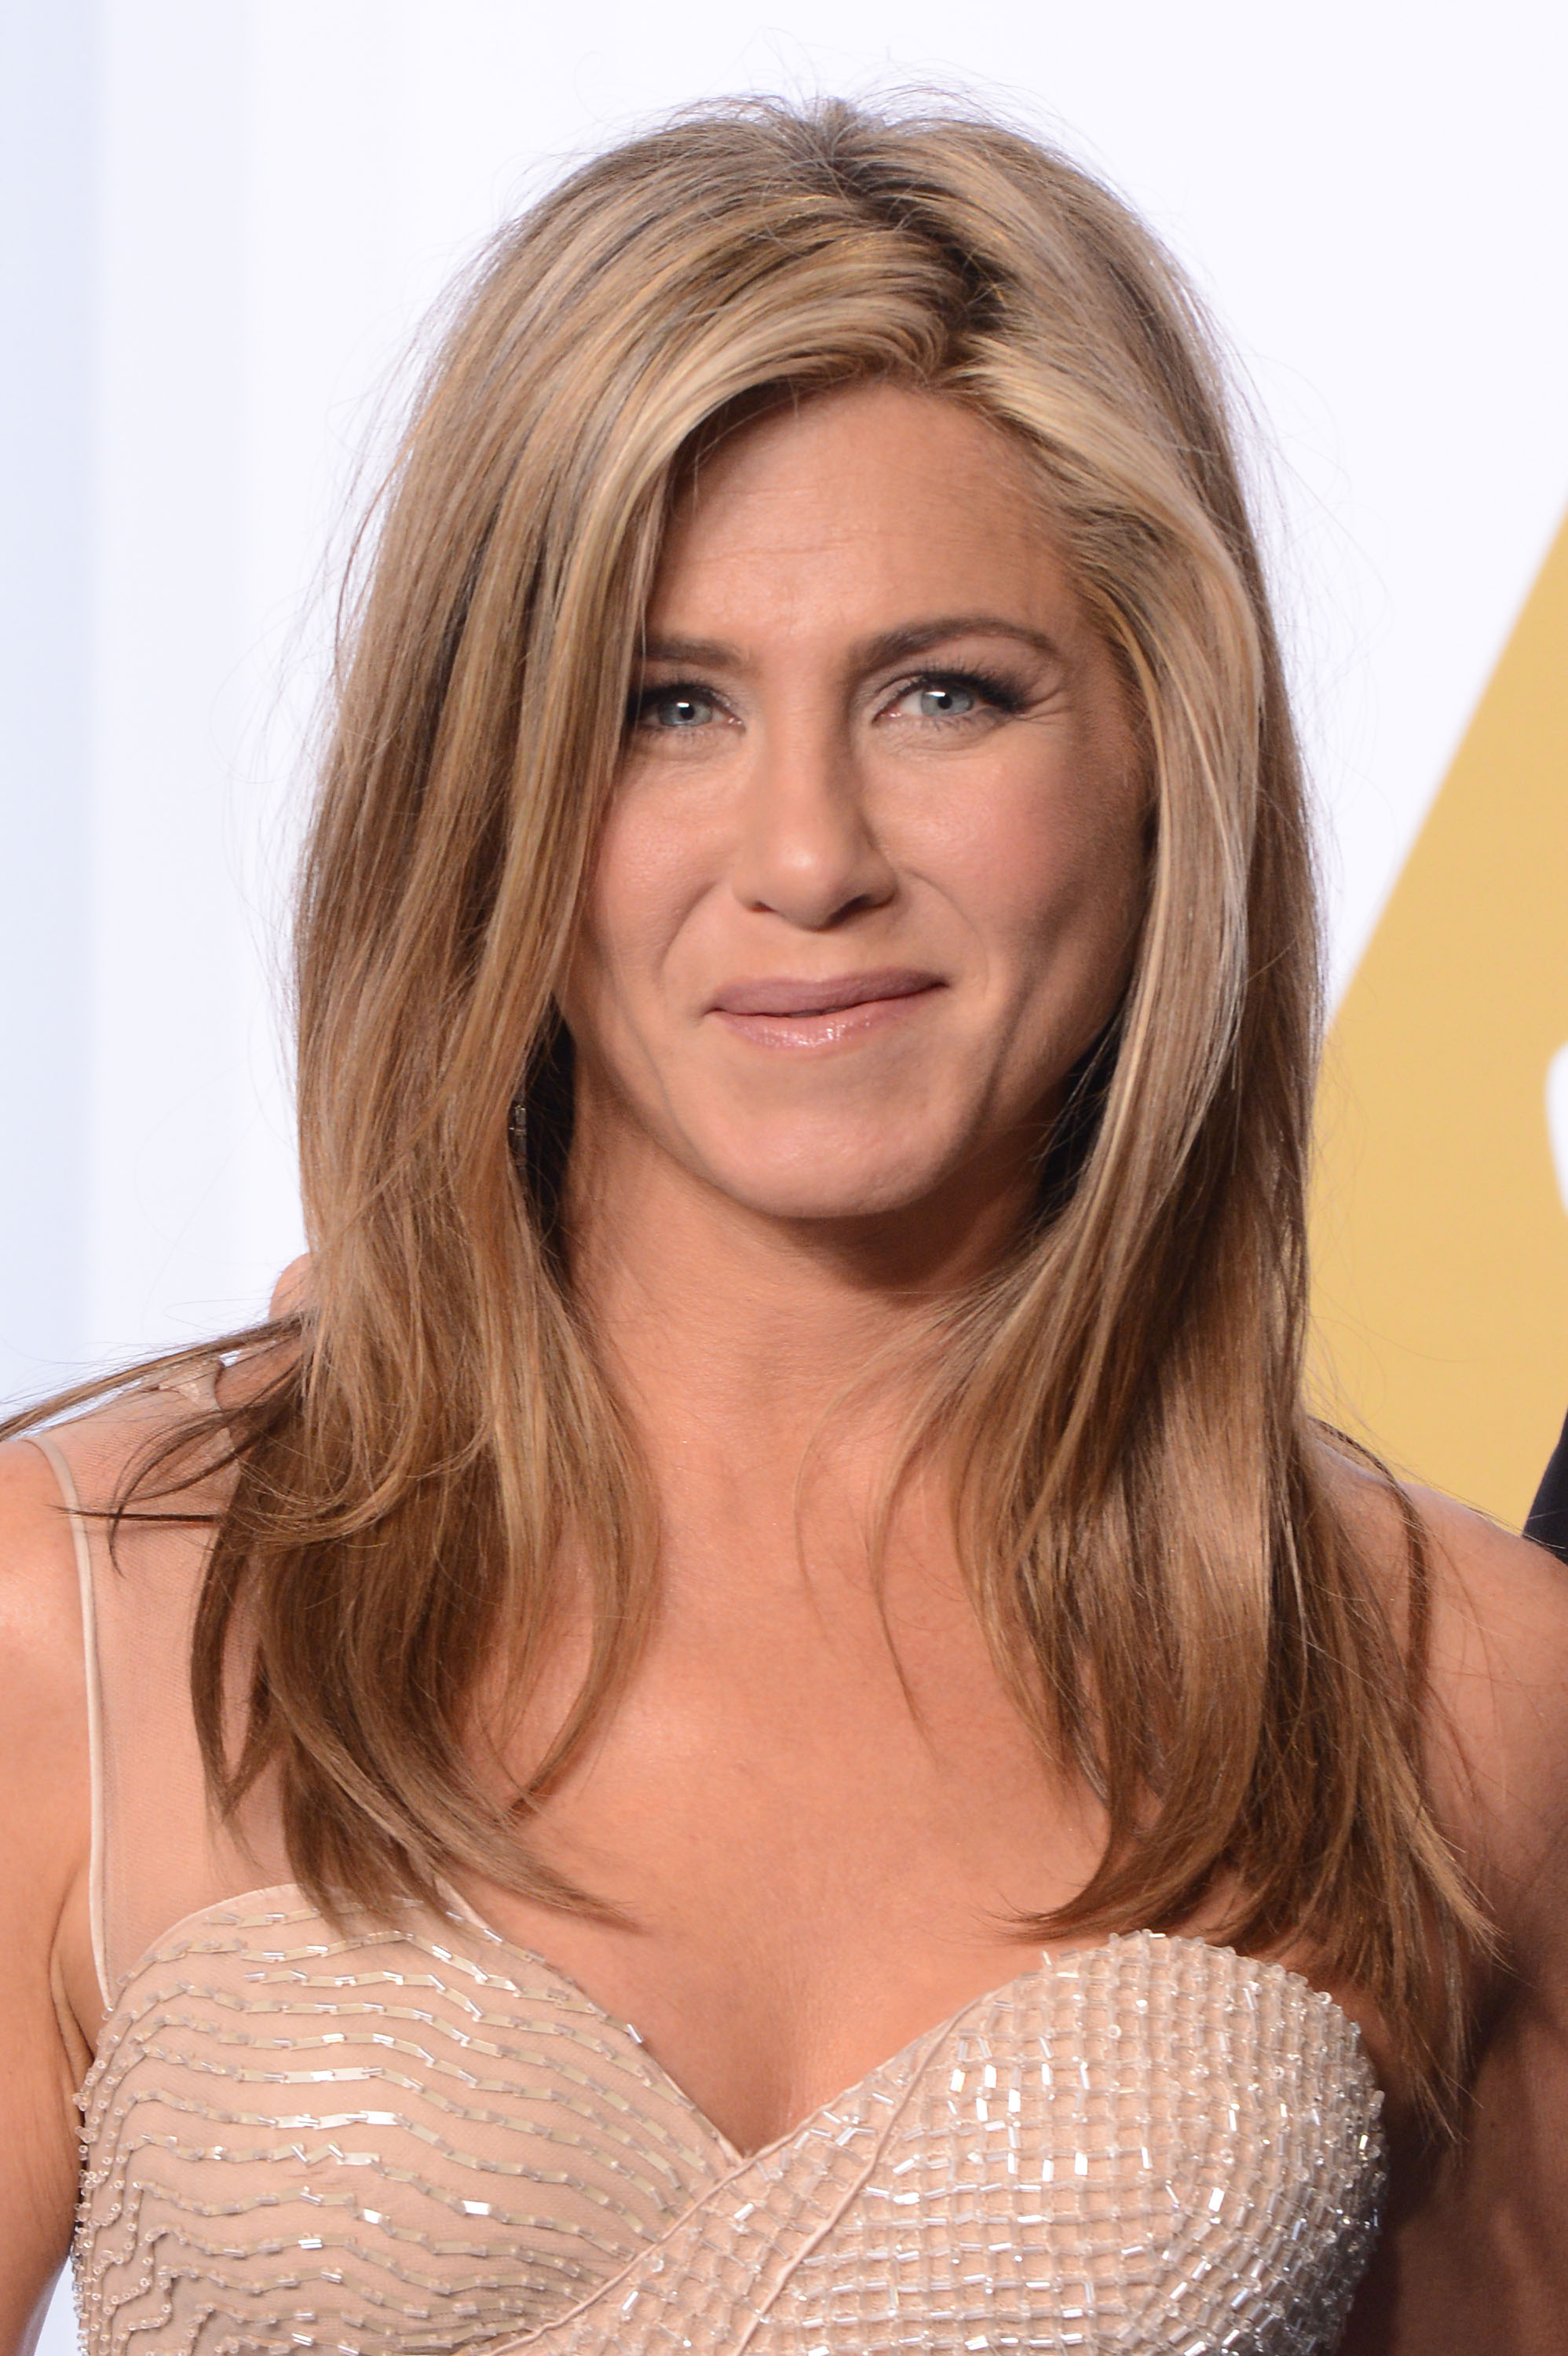 jennifer aniston hair evolution - timeline of jen aniston's hairstyles